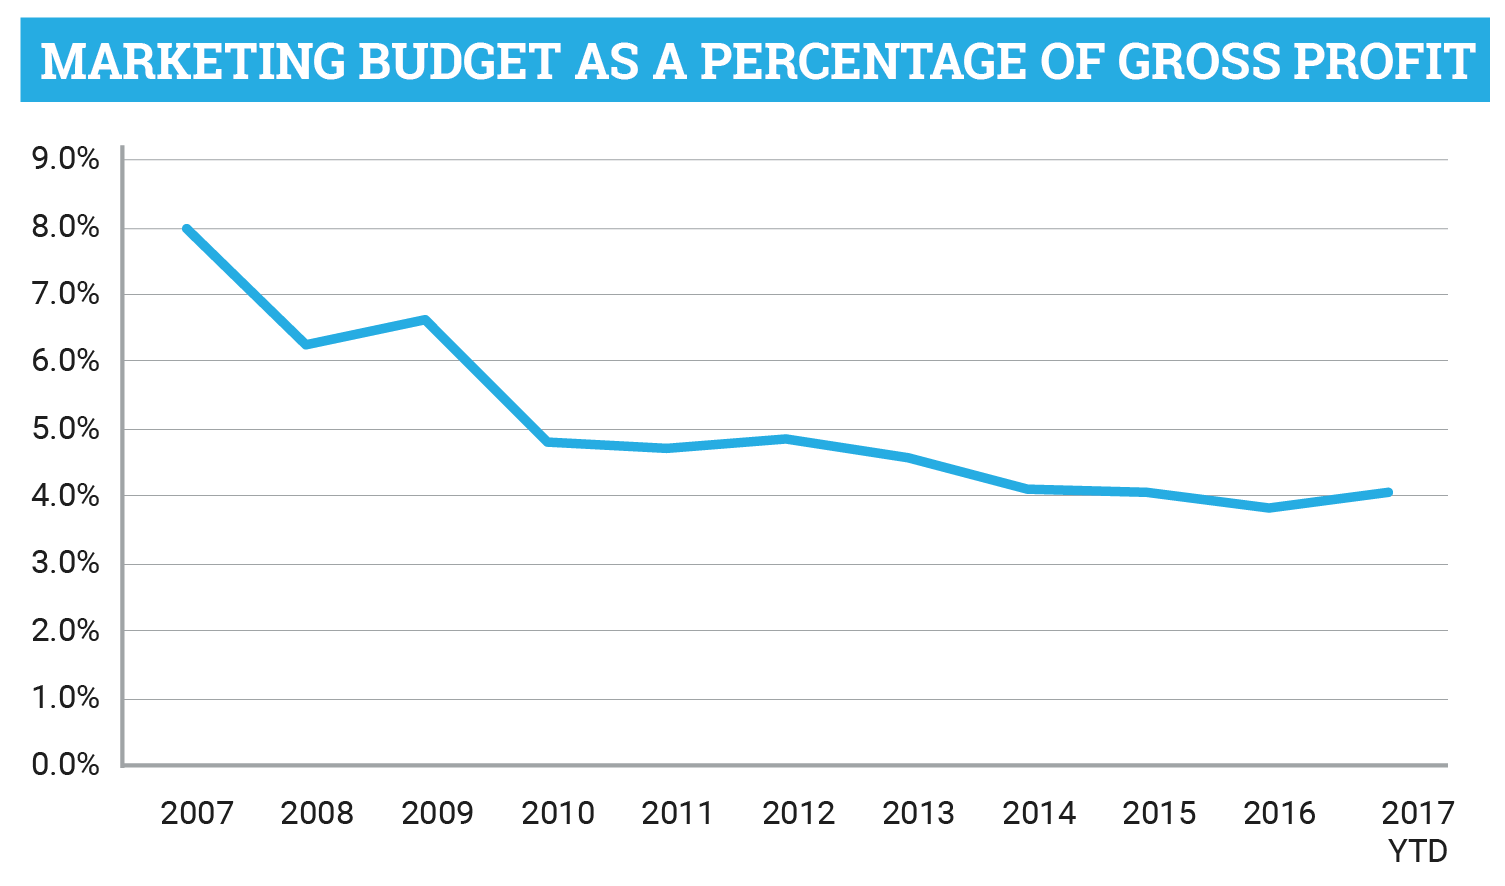 Recruitment Marketing Budget as a Percentage of Gross Profit